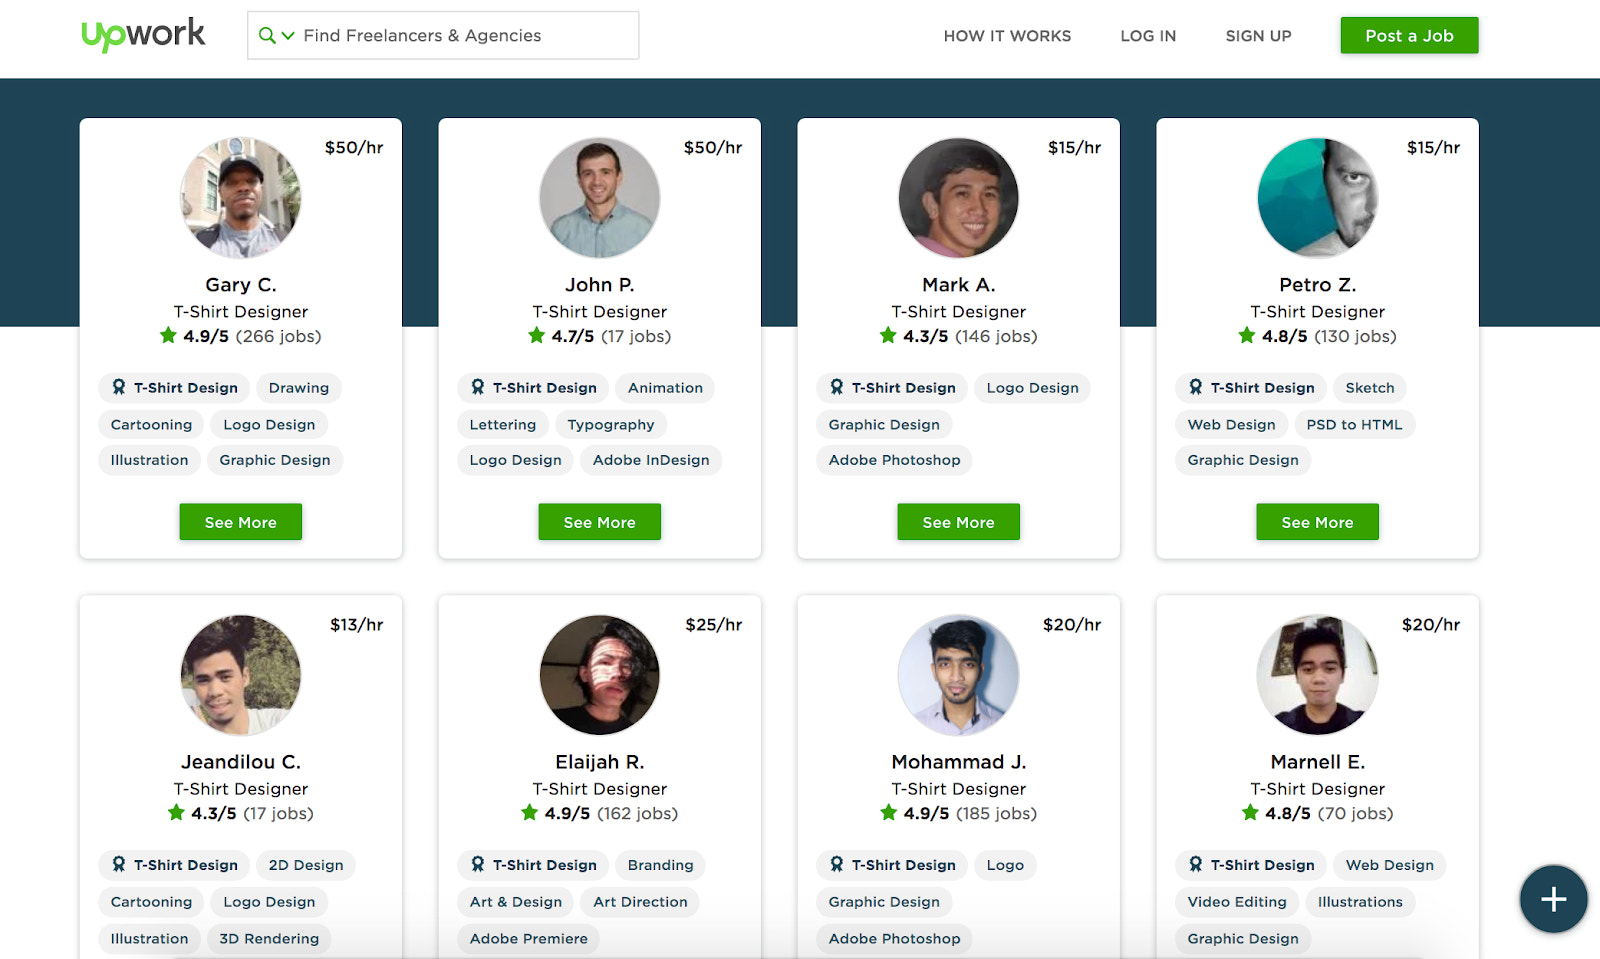 T-shirt designers for hire on Upwork